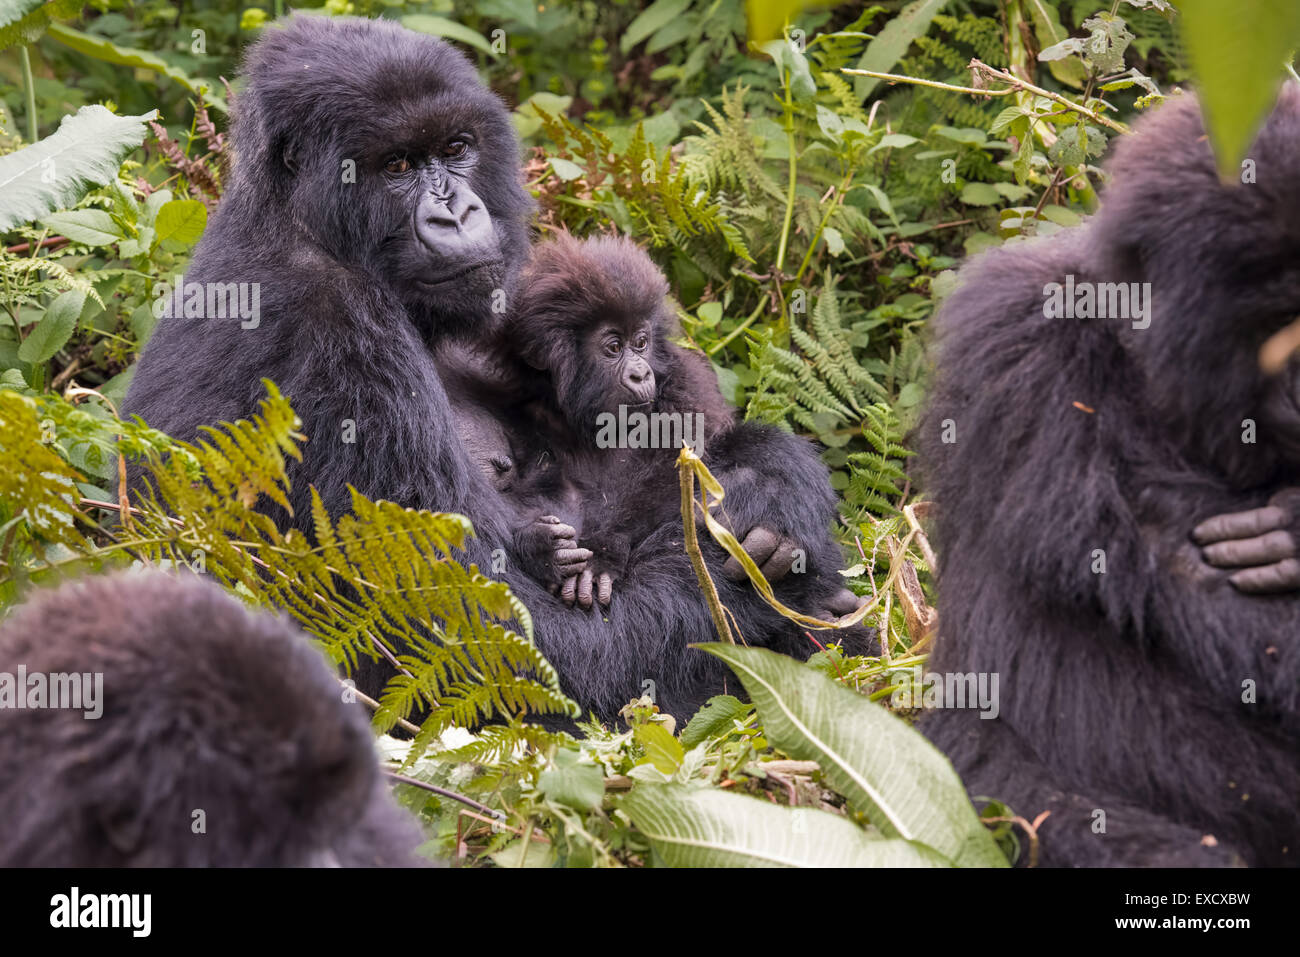 Mother gorilla and baby, Rwanda - Stock Image